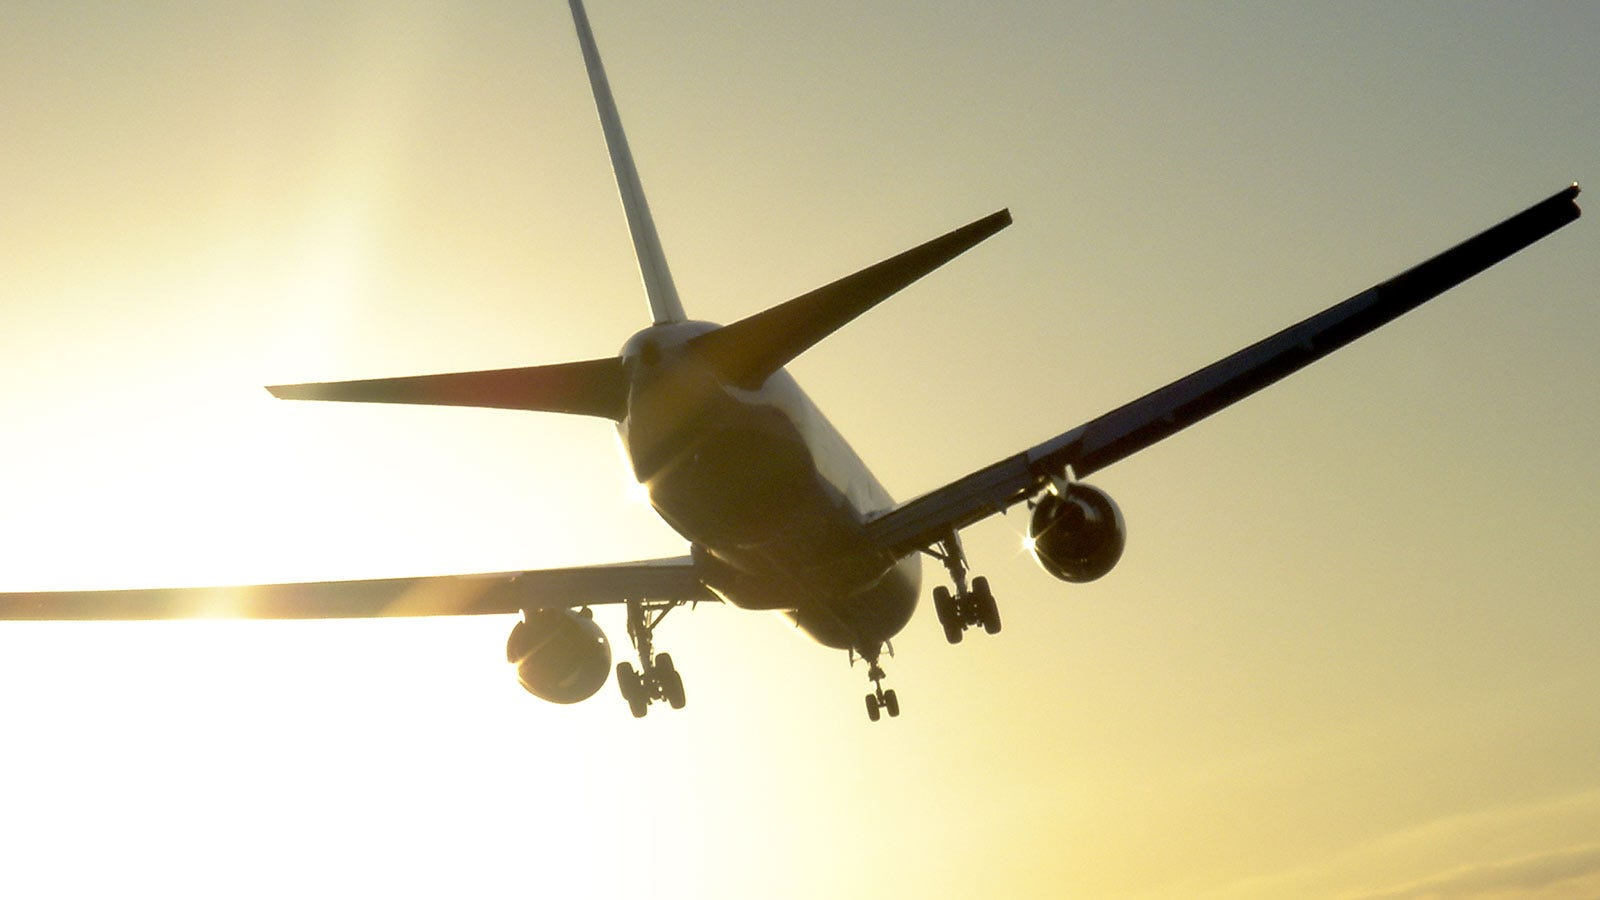 a large passenger aircraft flying off into the sunset